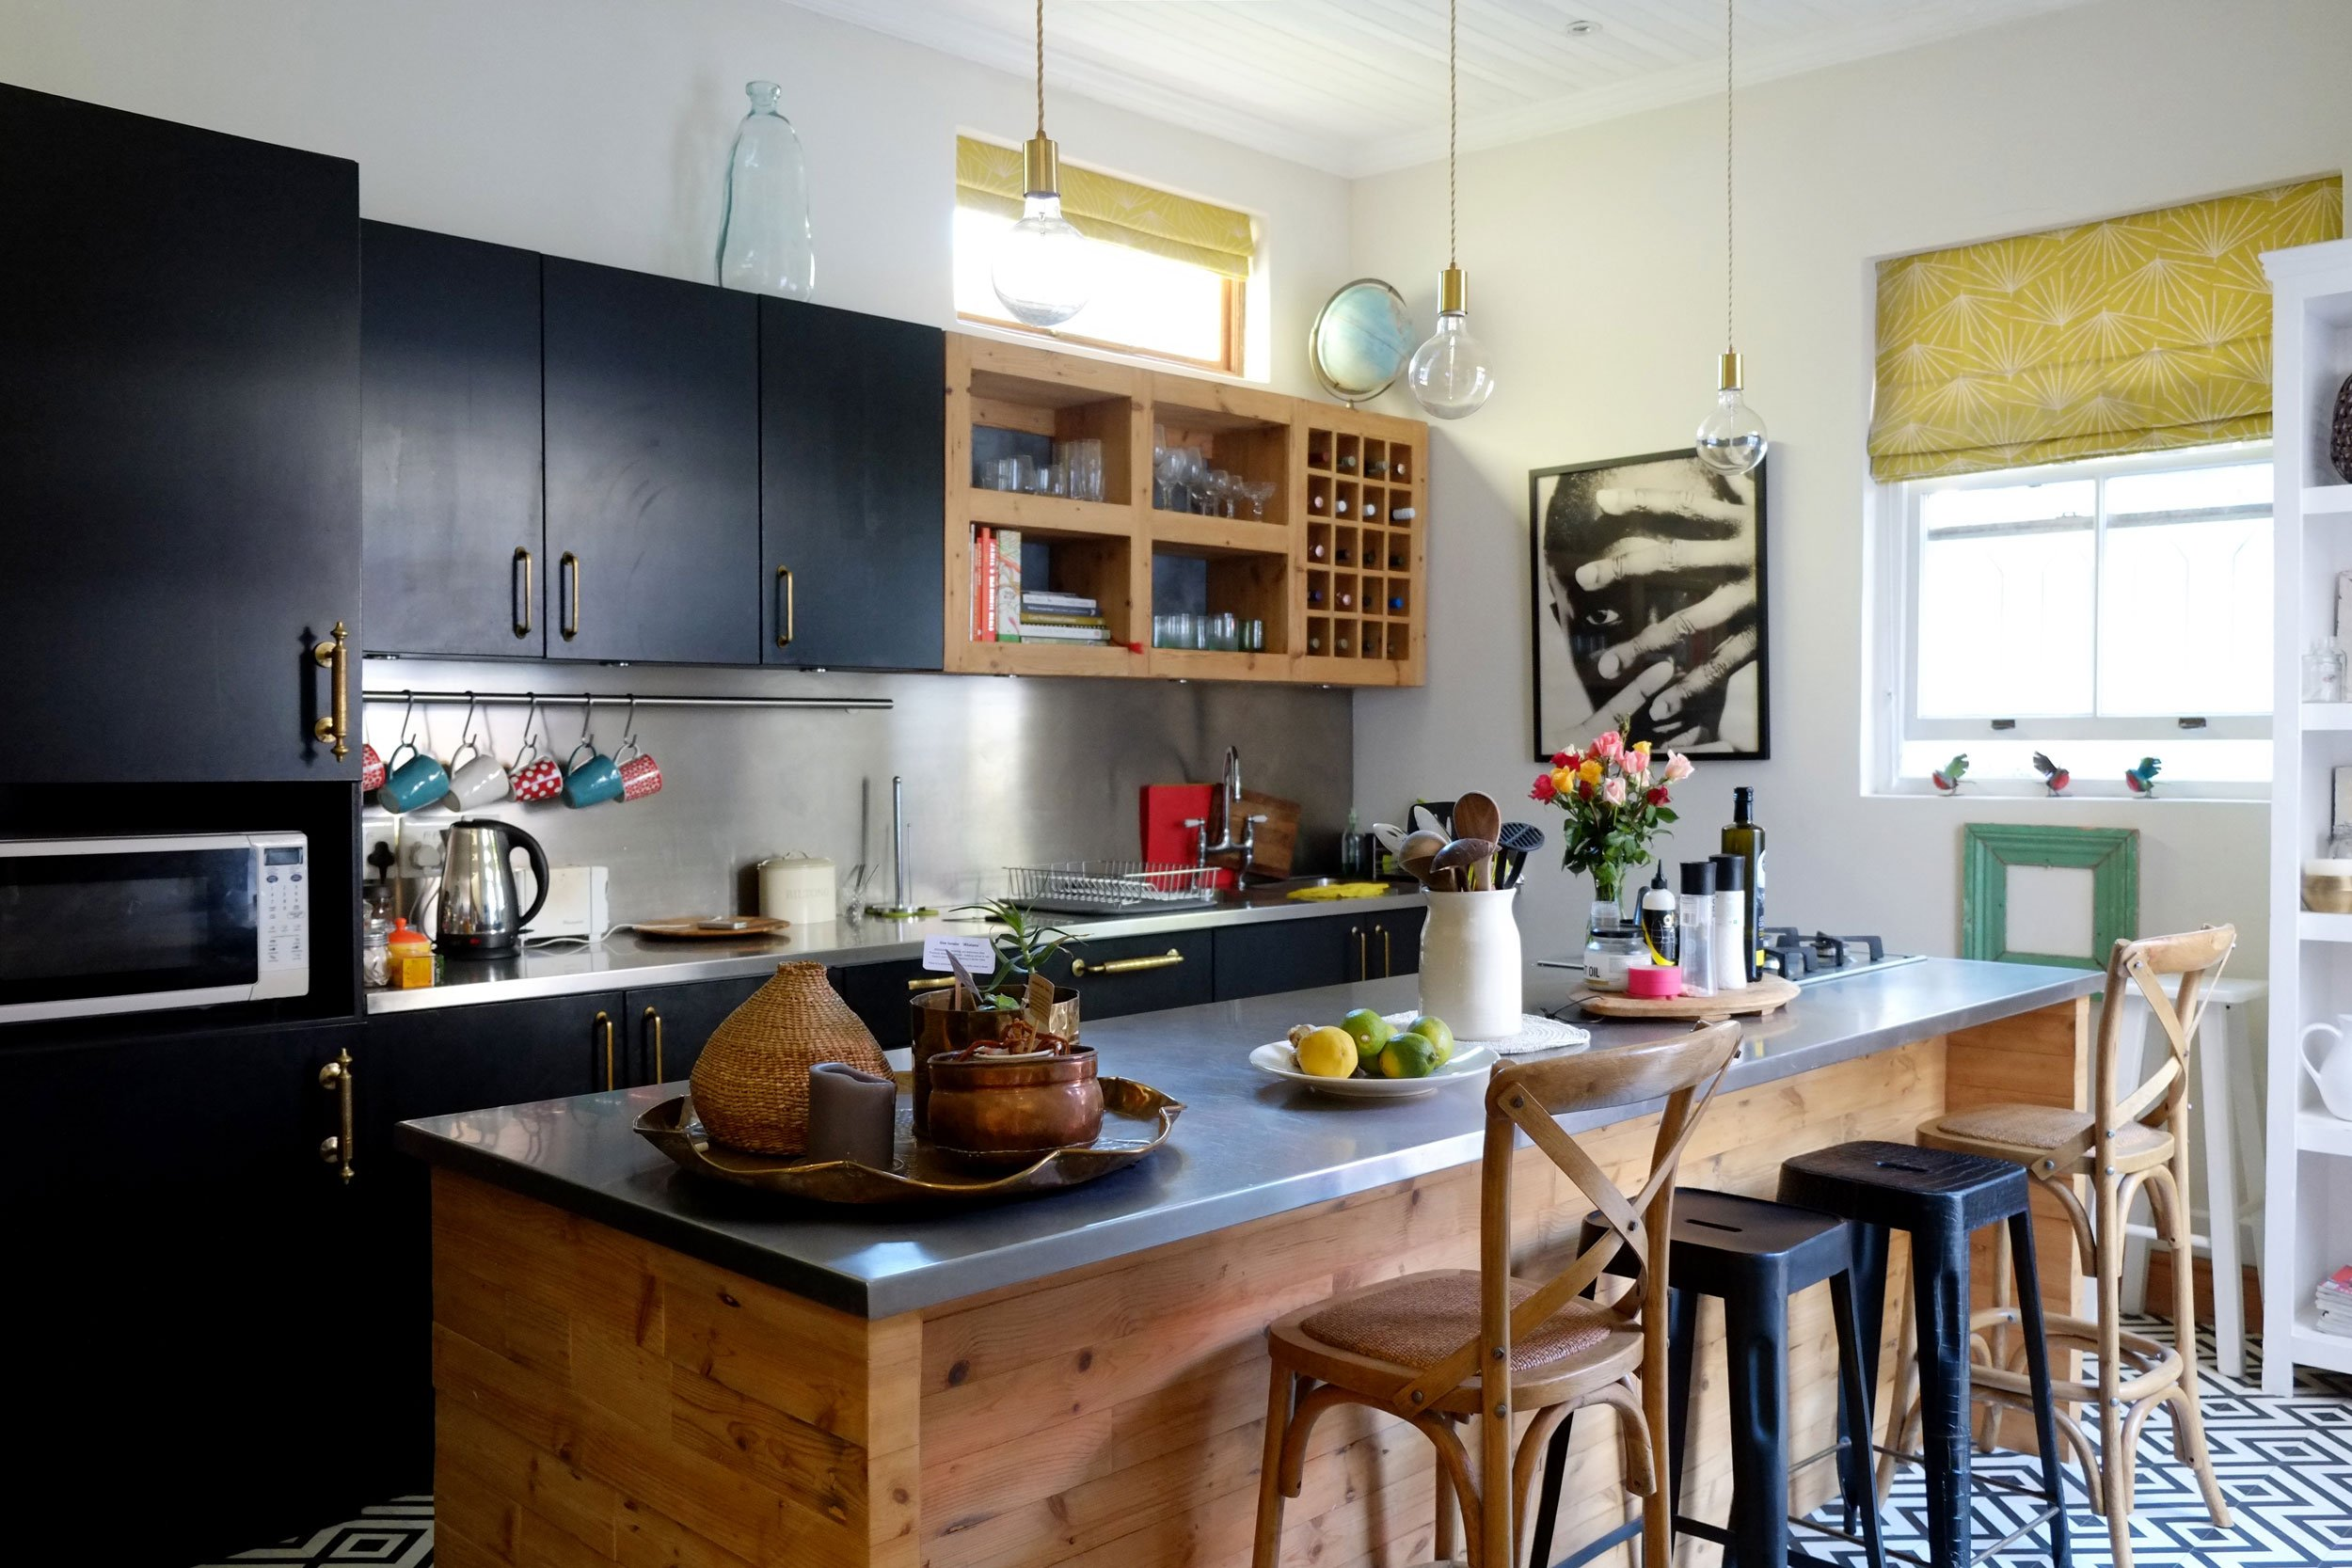 How To Organize Kitchen Counter Space